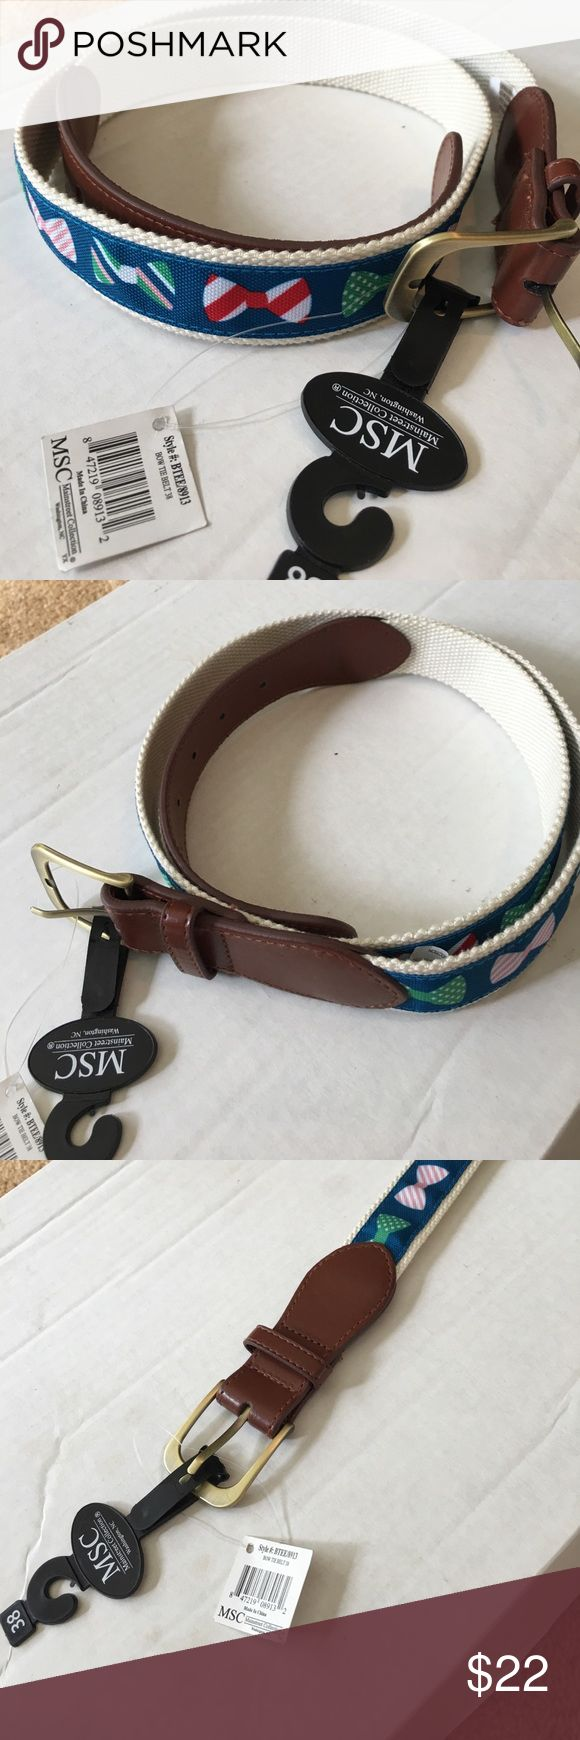 Men's New Bow tie Belt Size 38 Preppy New. Fabric with leather accents. Tags attached. Clean home mainstream collection Accessories Belts